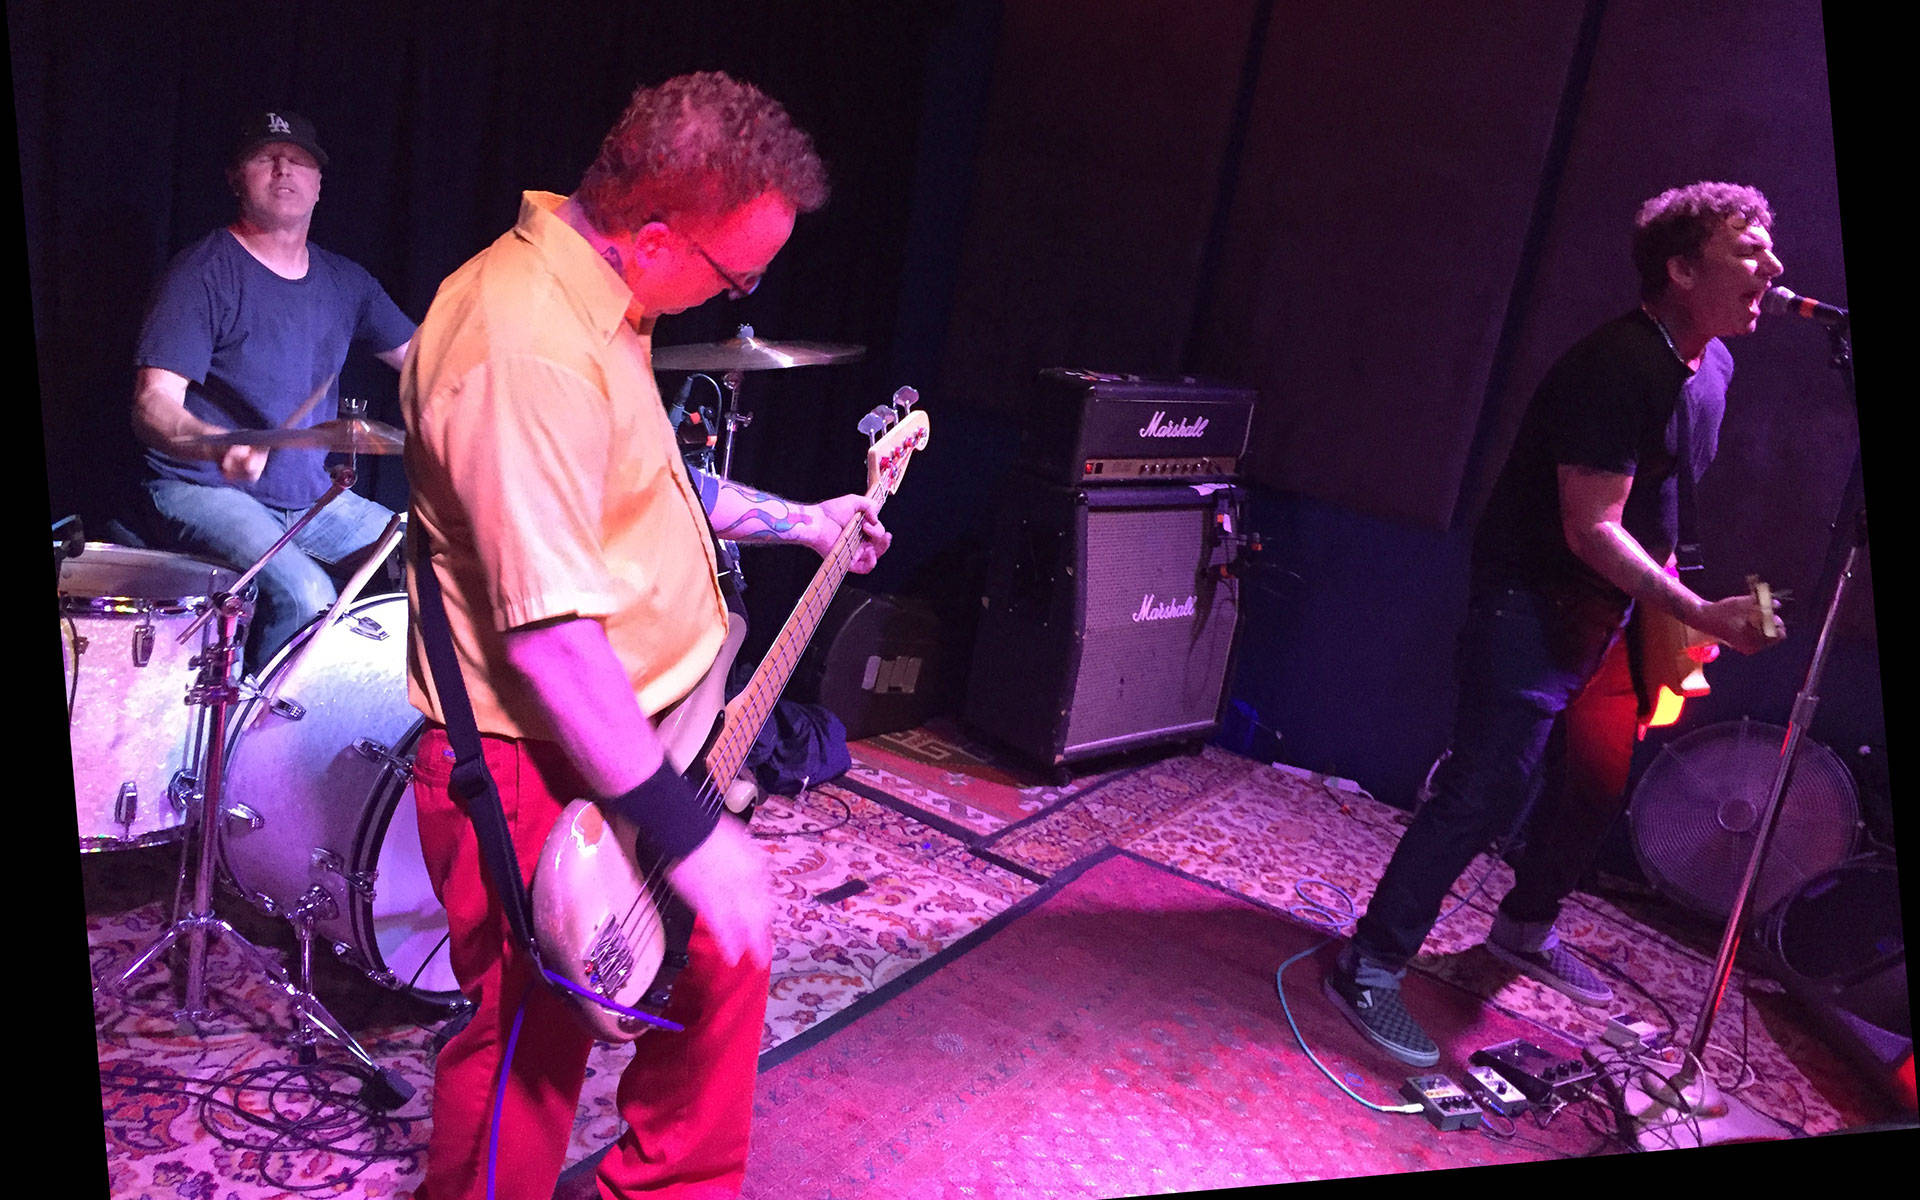 Jawbreaker plays their first show in 21 years, Aug. 3, 2017, at the Ivy Room in Albany, Calif. Gabe Meline/KQED